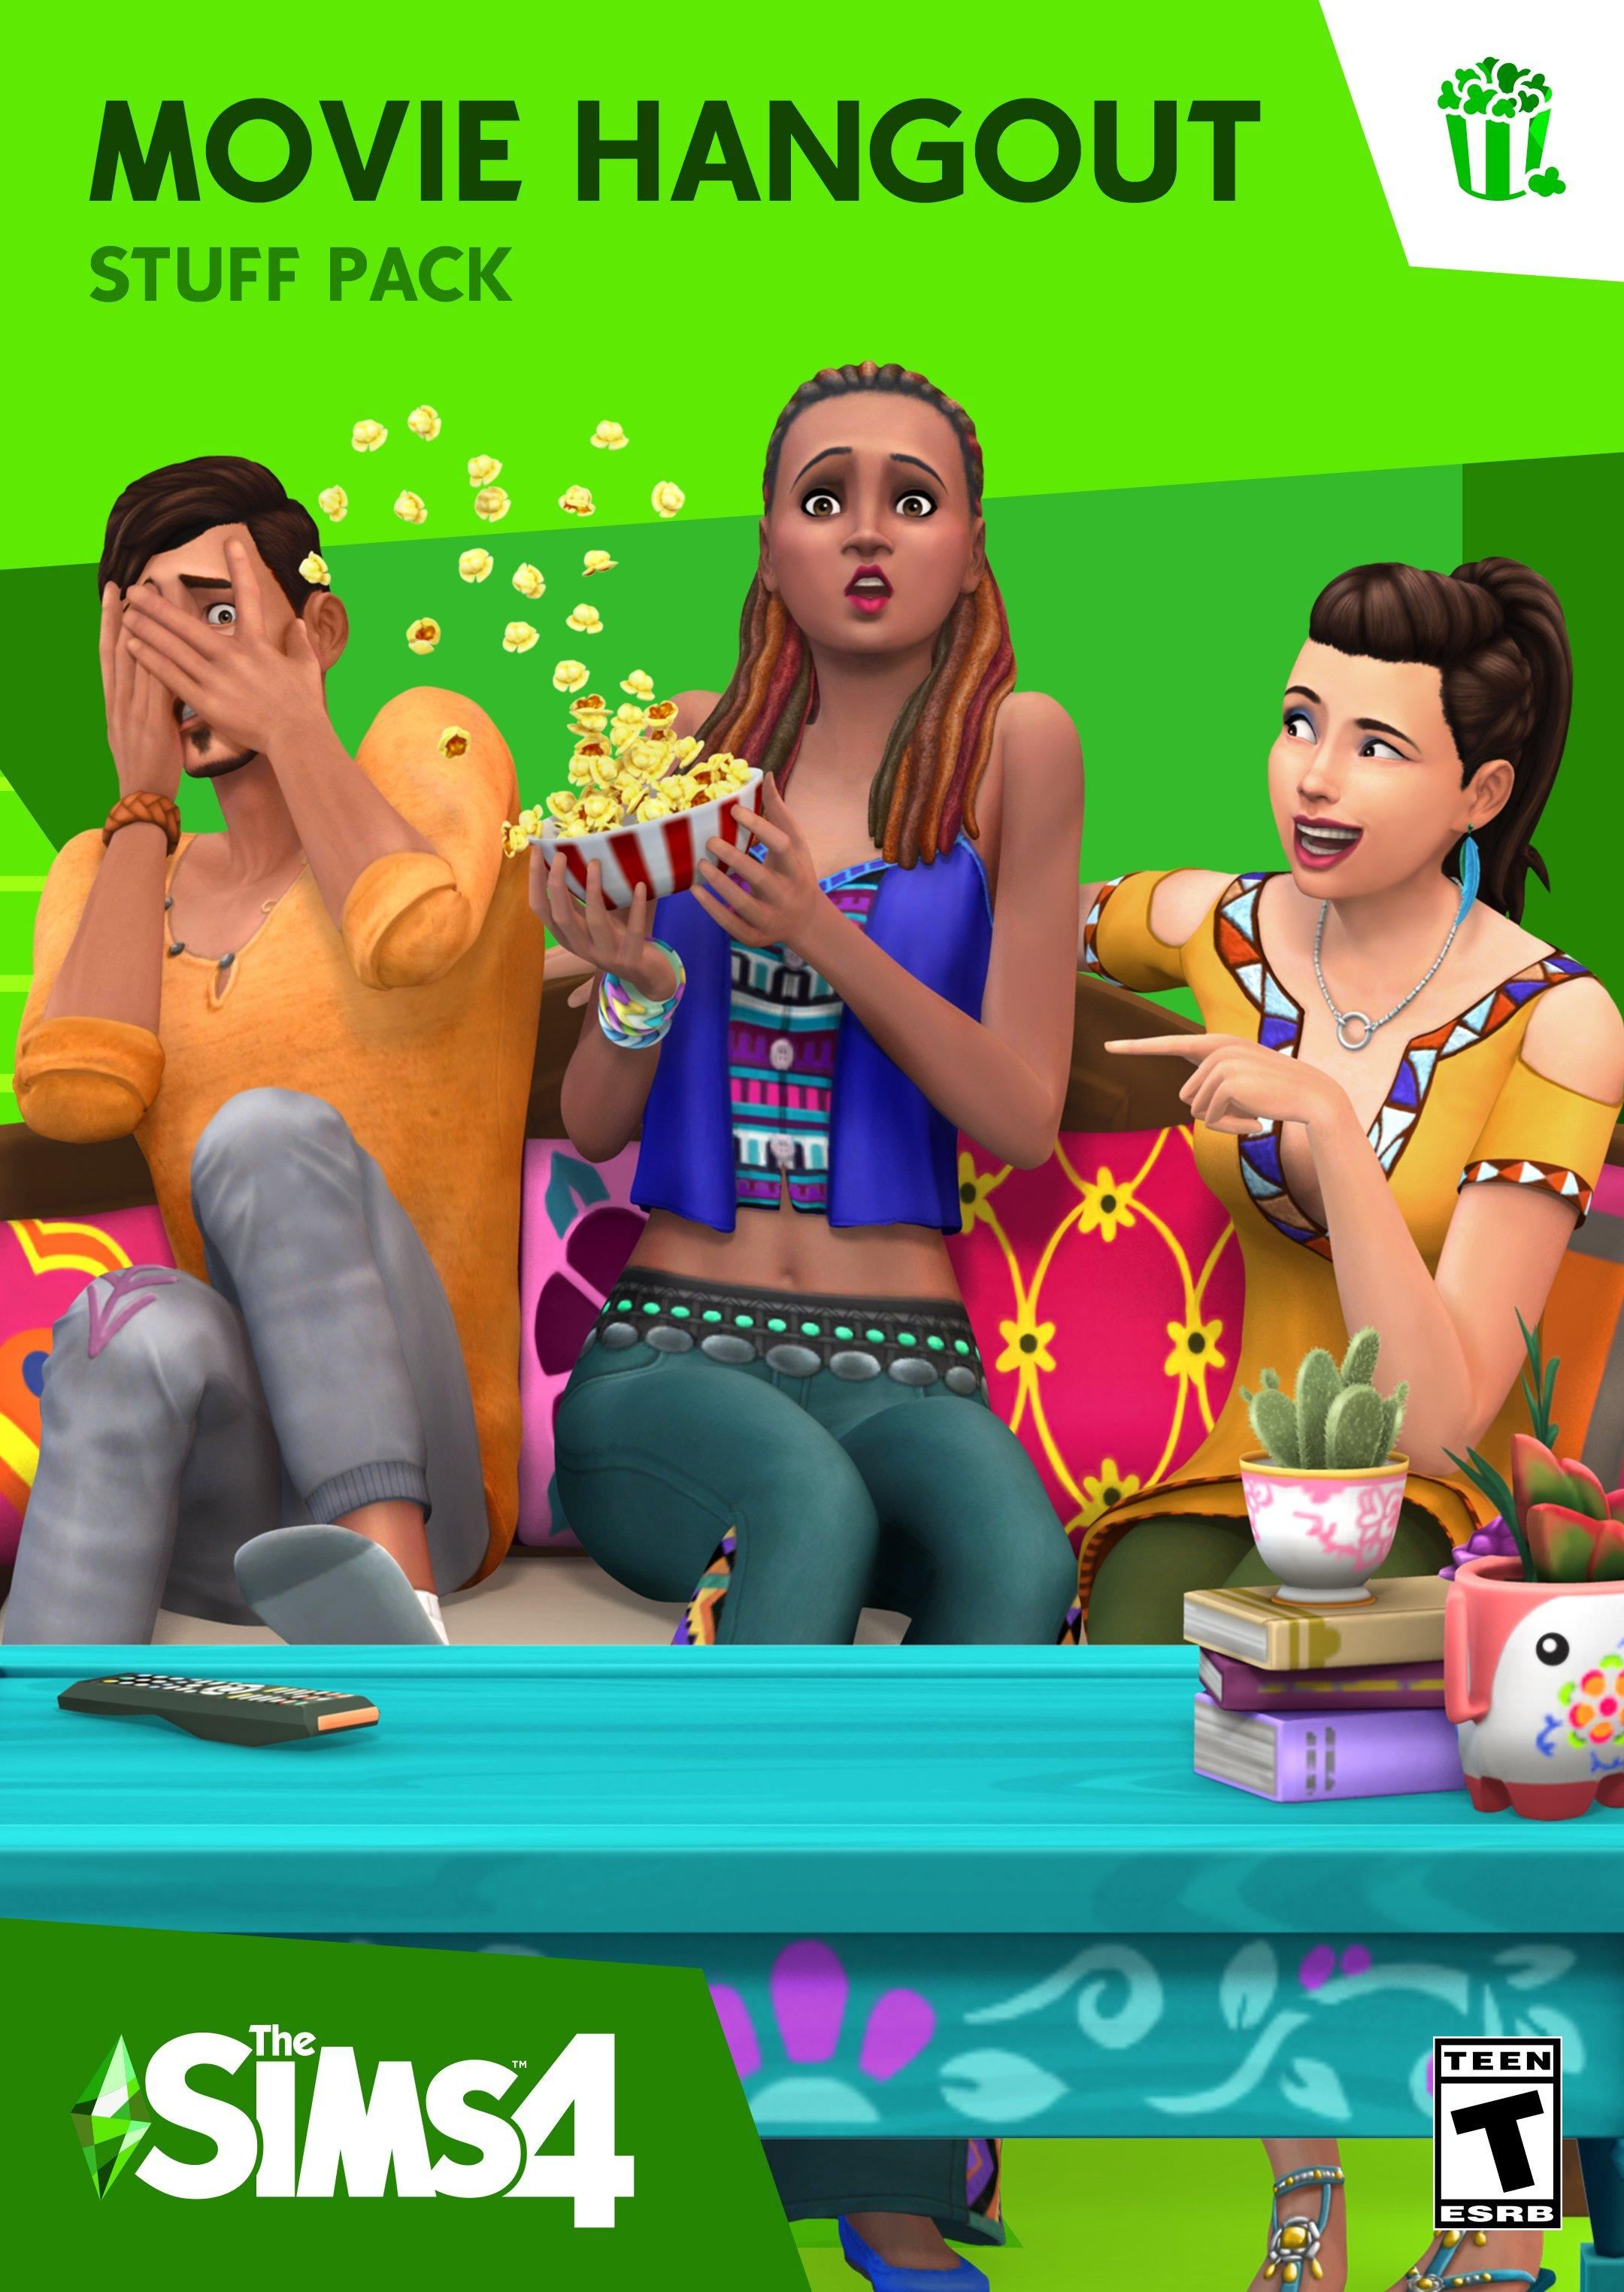 The Sims 4: Movie Hangout Stuff | <%Console%> | GameStop